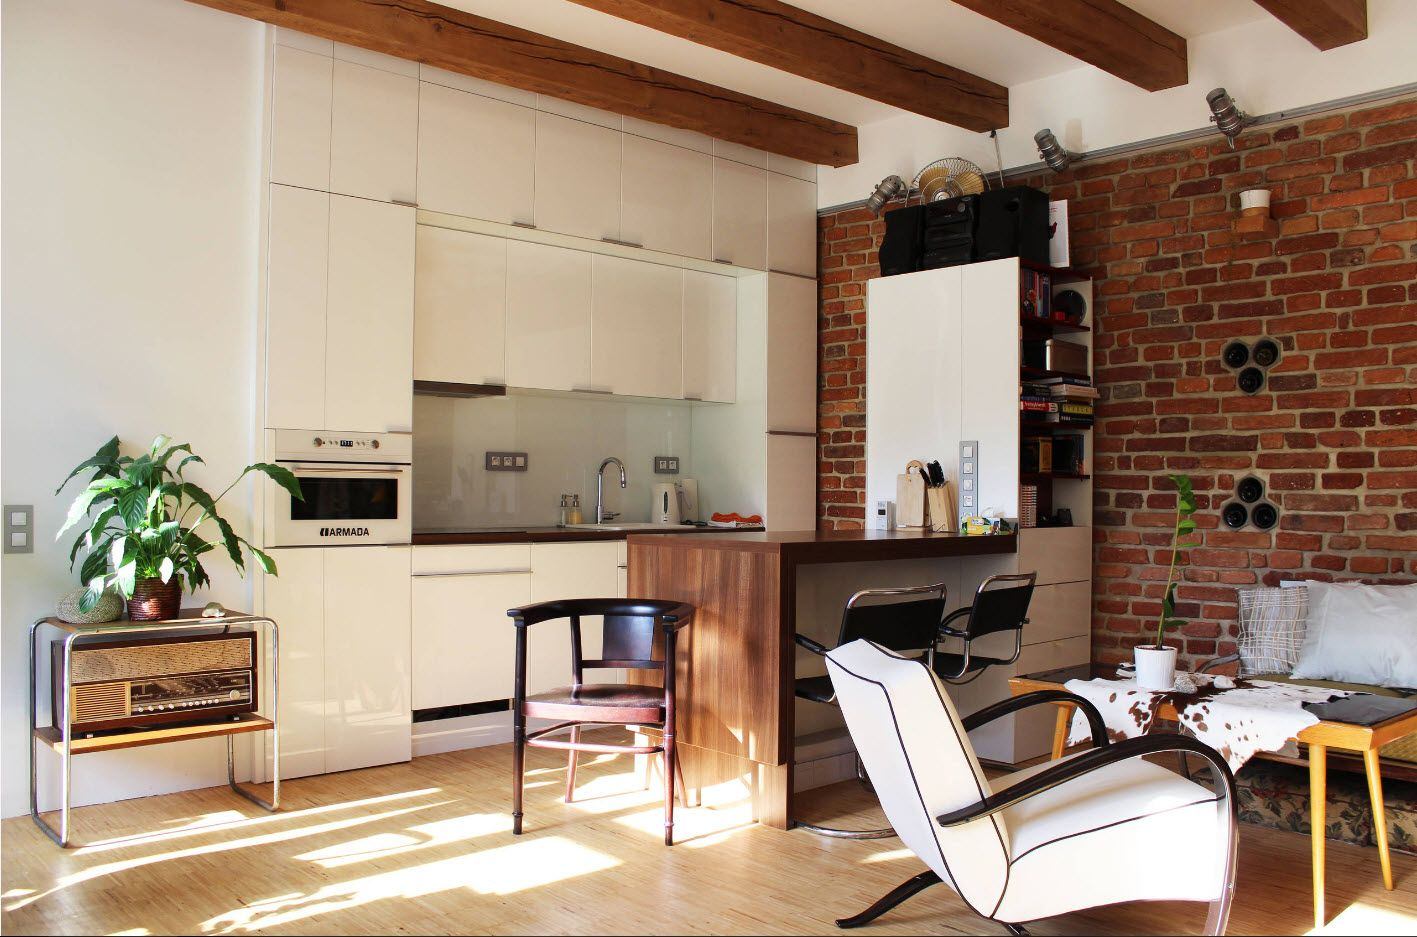 100+ Small Studio Apartment Design Ideas & Real-life Projects Photogallery. Nice kitchen with white facades and brickwork